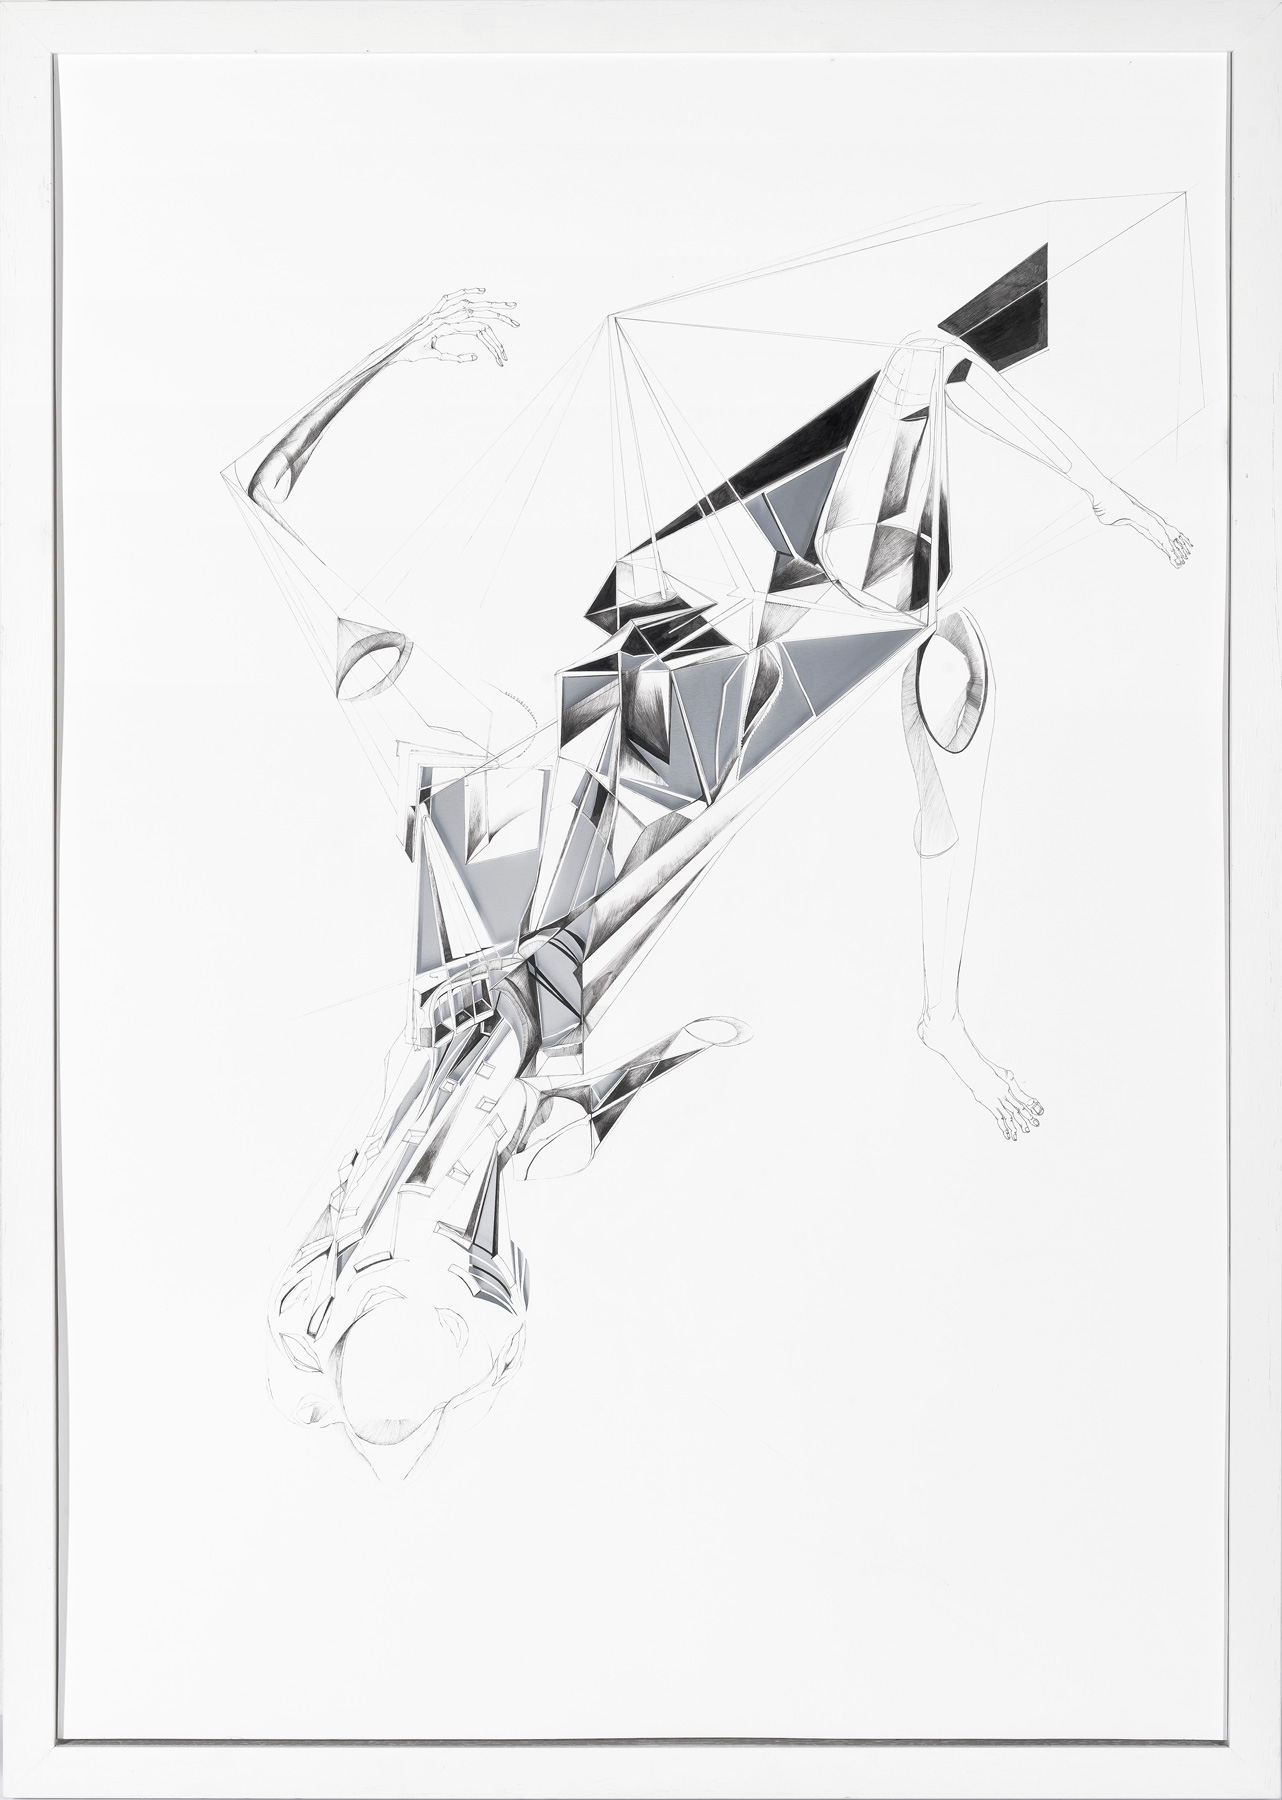 Nina Annabelle Märkl | Showcase | Ink and pencil on paper, cut outs, aluminium | 100 x 70 x 3,5 cm | 2014 | photo: Walter Bayer